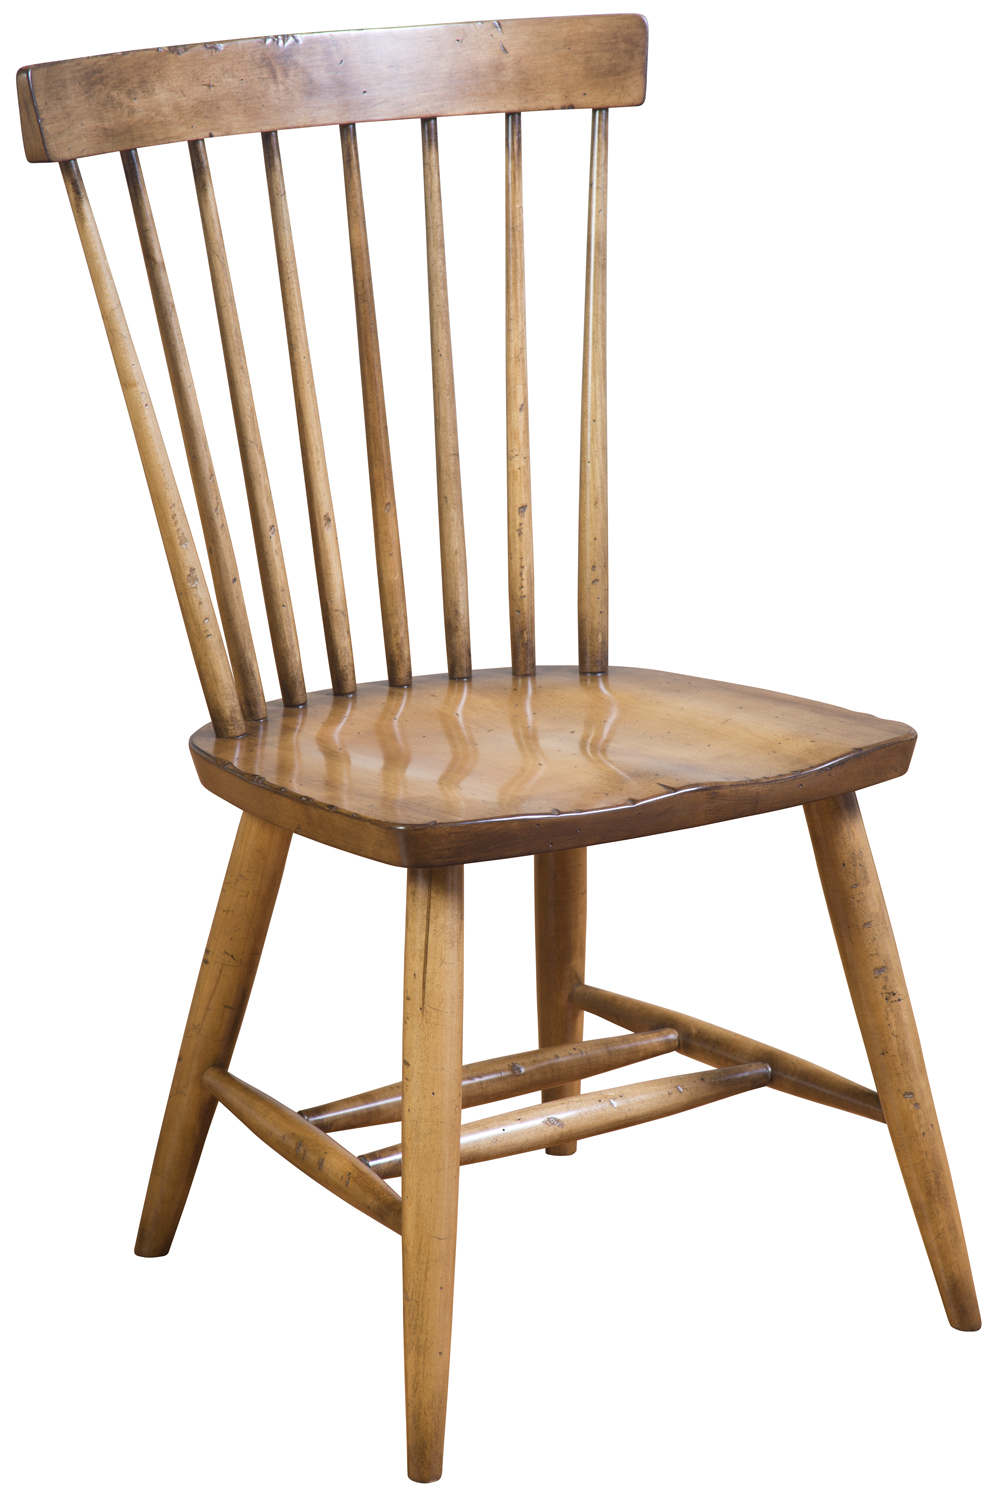 Chicago Chair Image